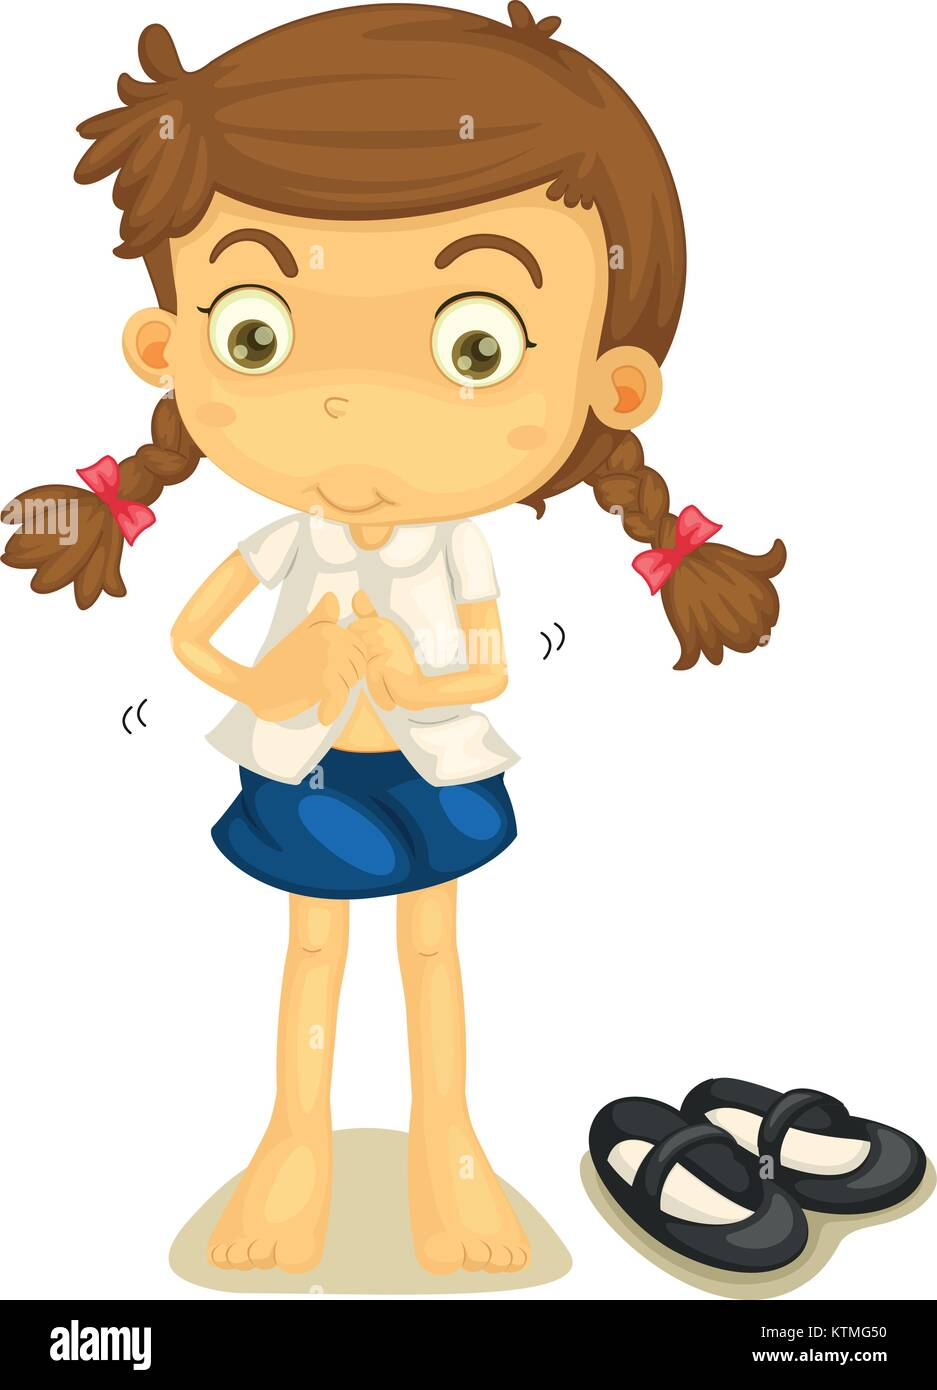 illustration of a girl in school uniform on a white stock vector art